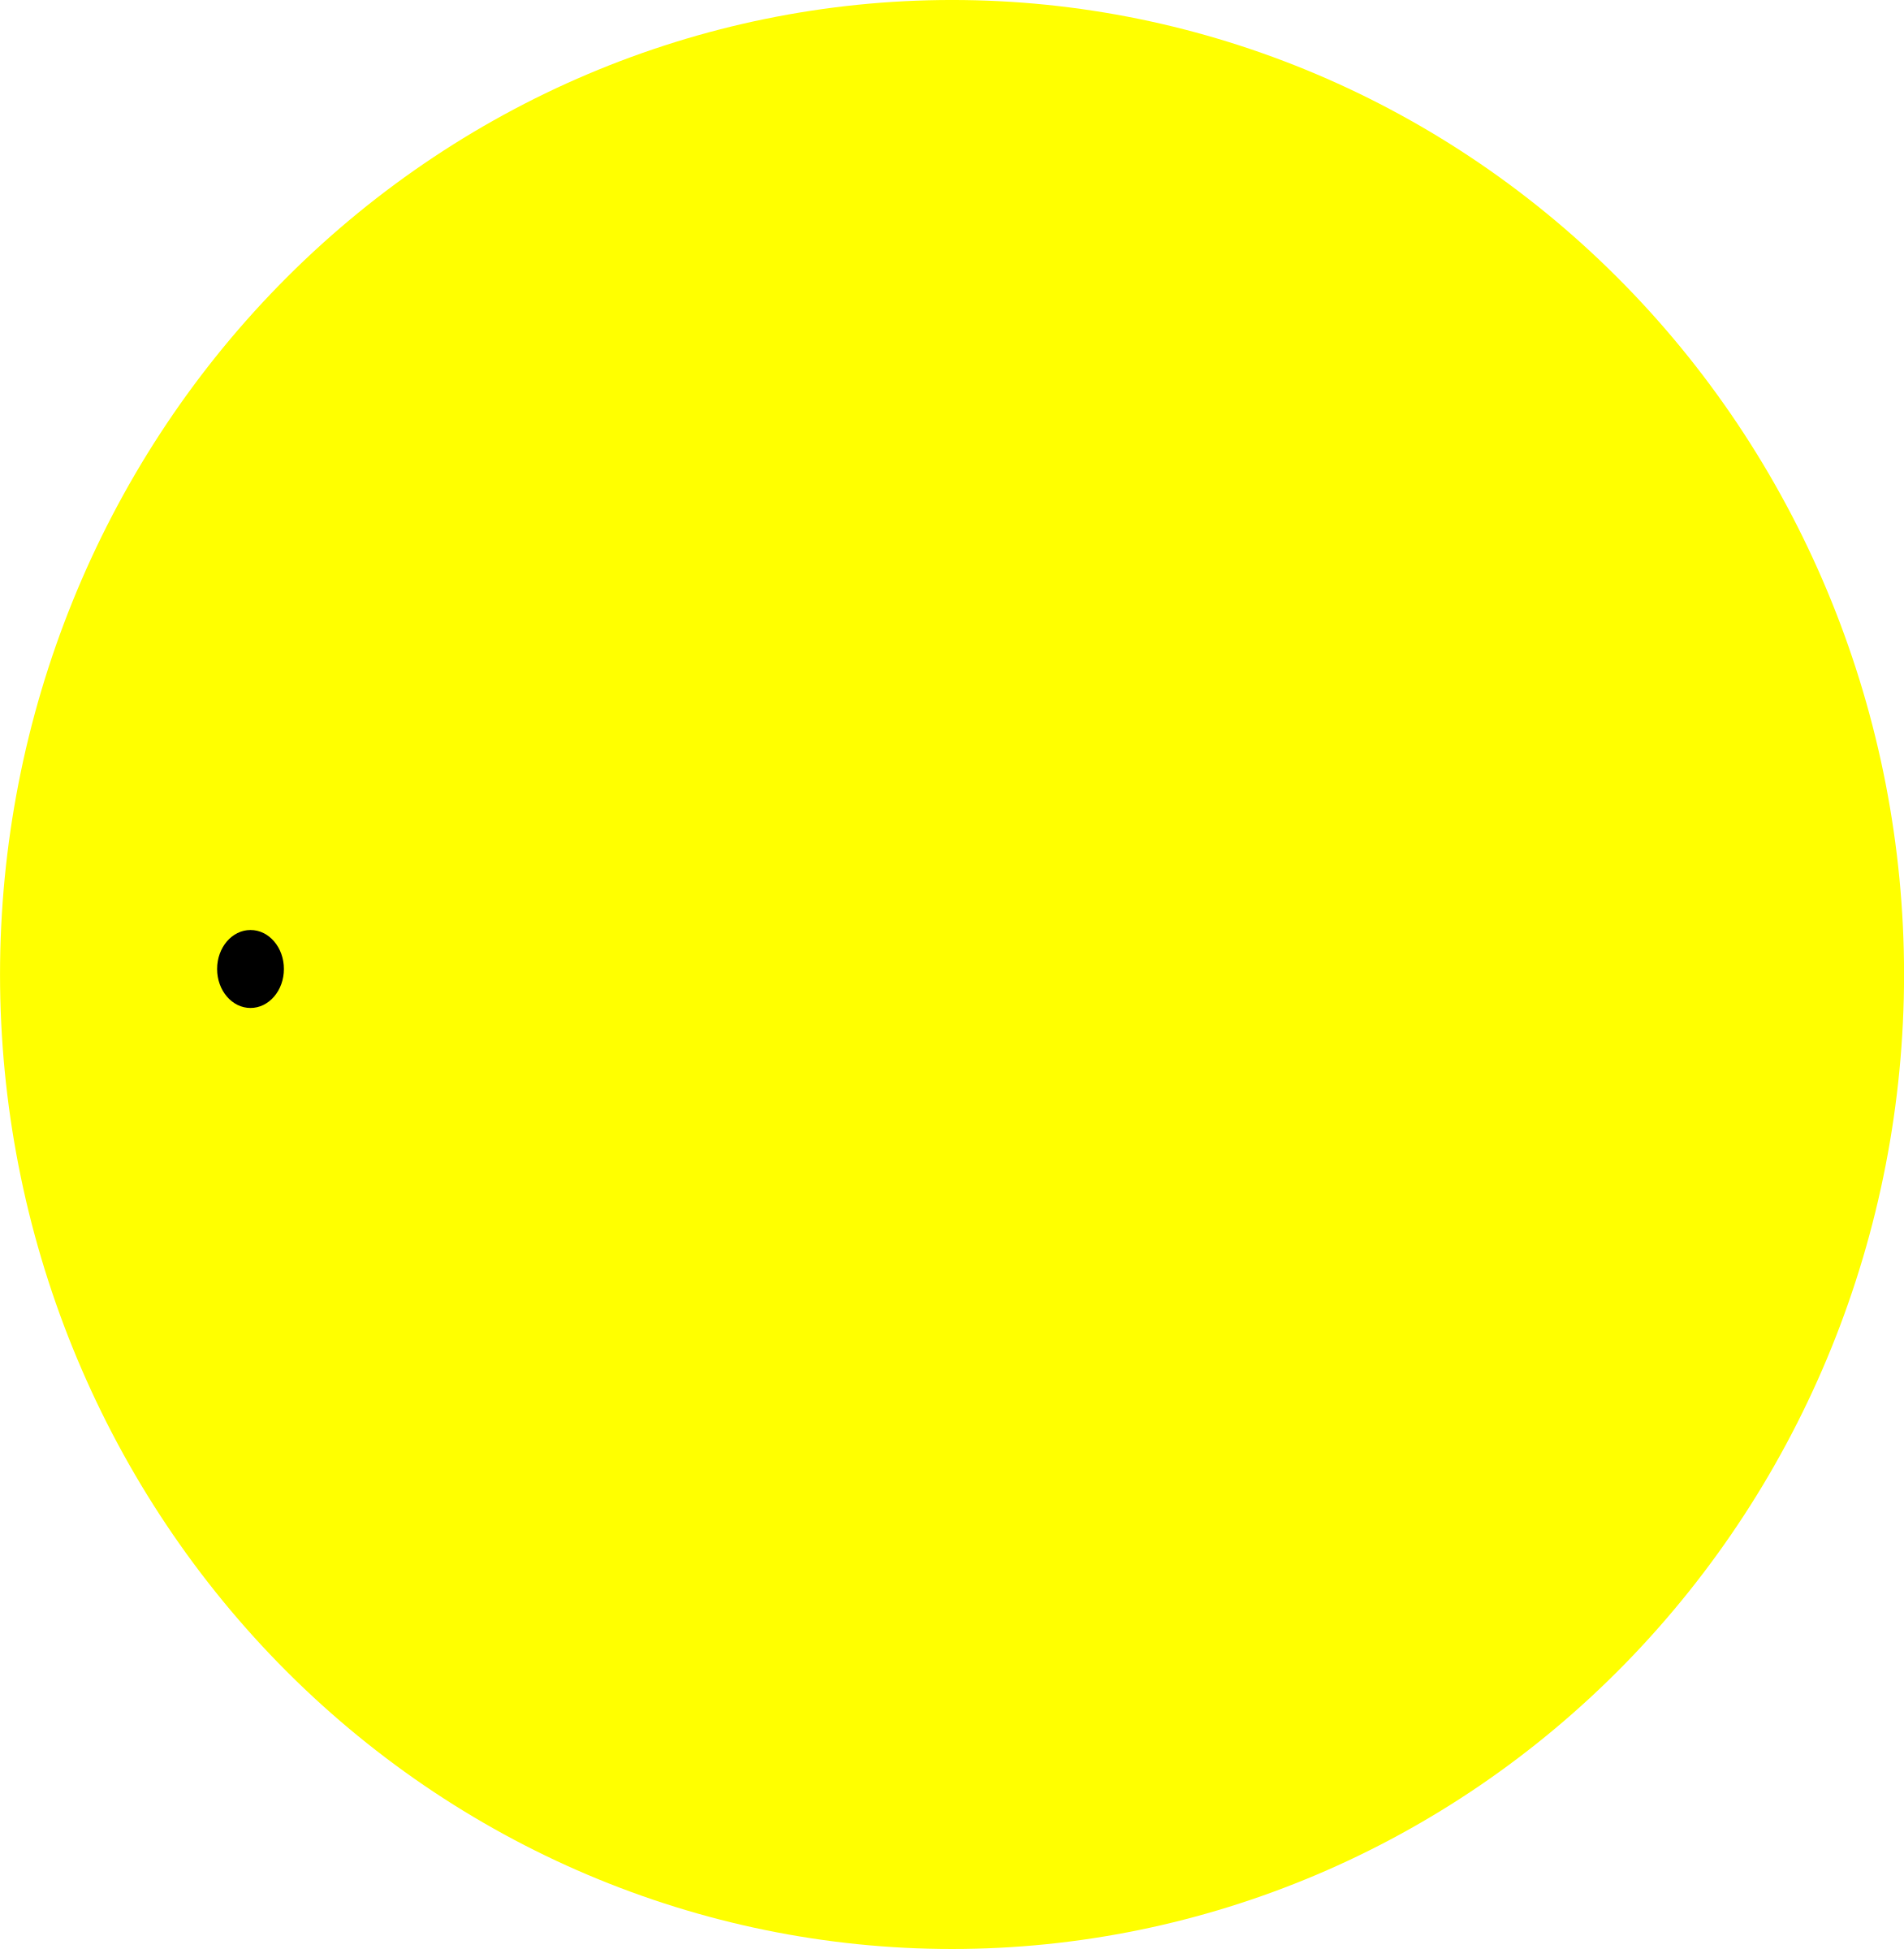 Transit of Venus over Sun by navaneethks